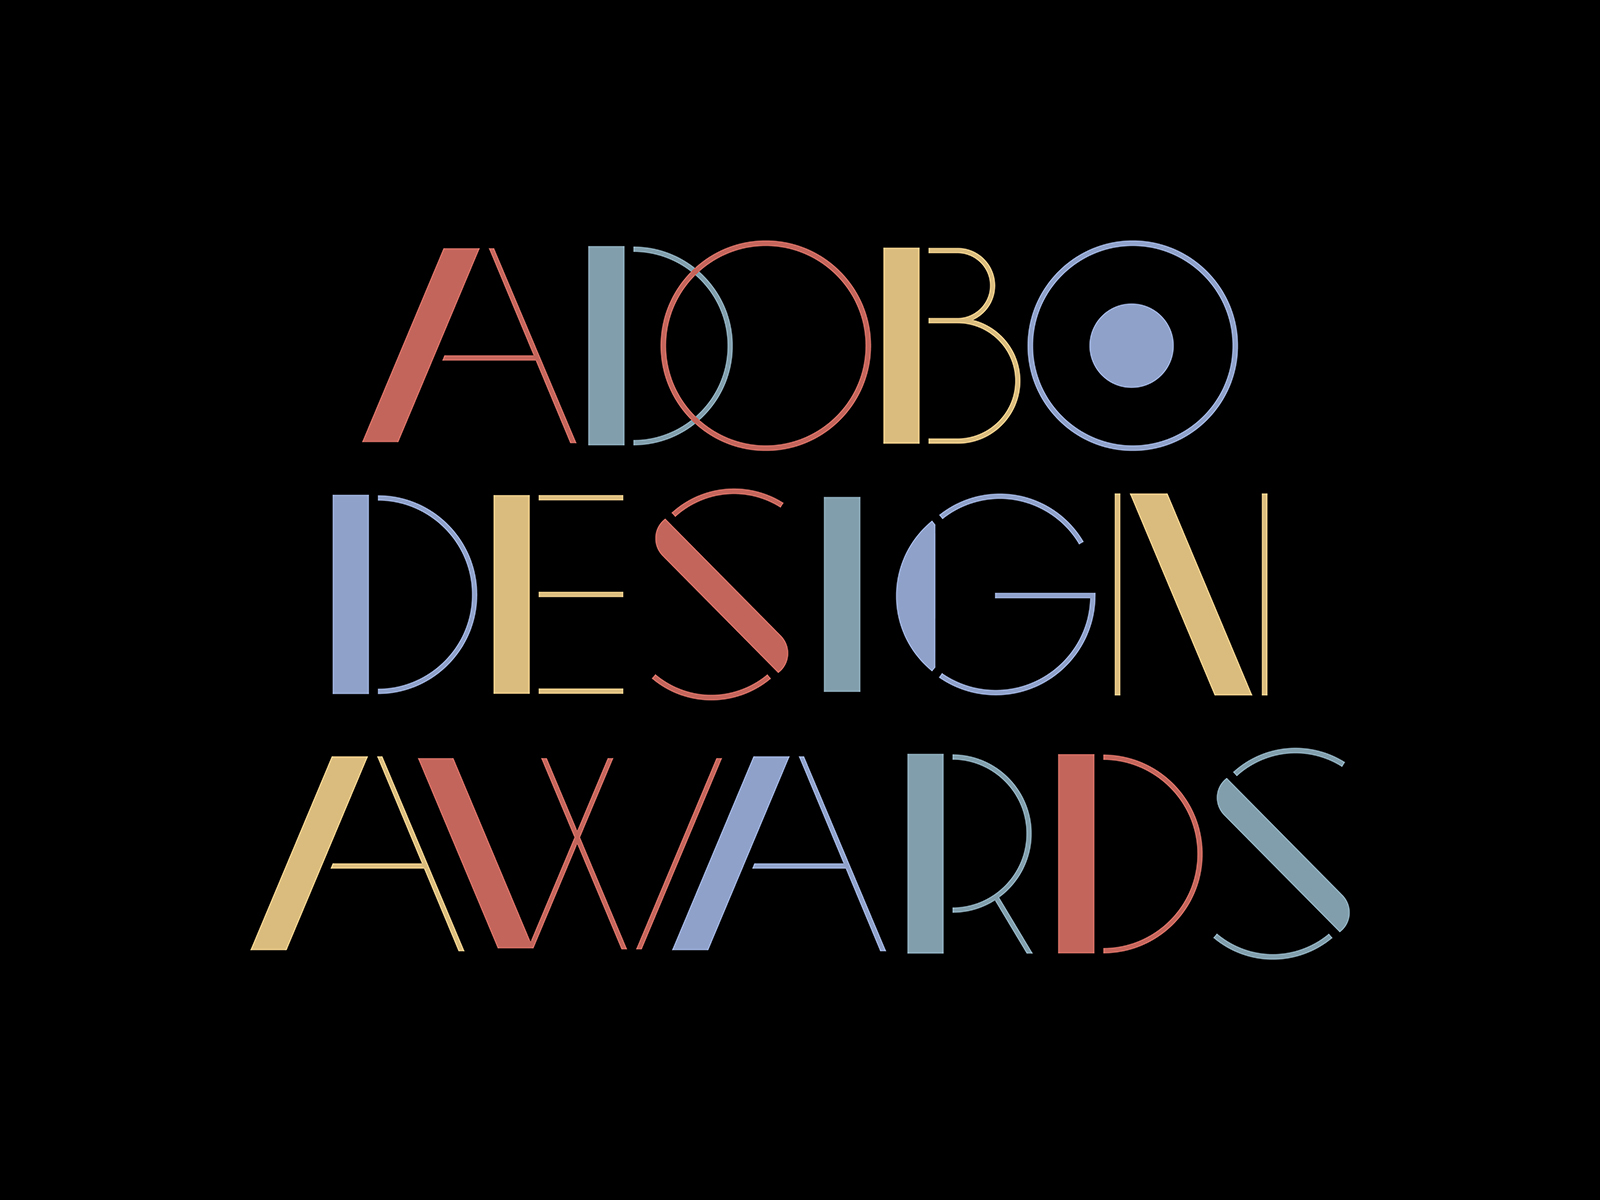 ADOBO DESIGN AWARDS BOARD4.jpg